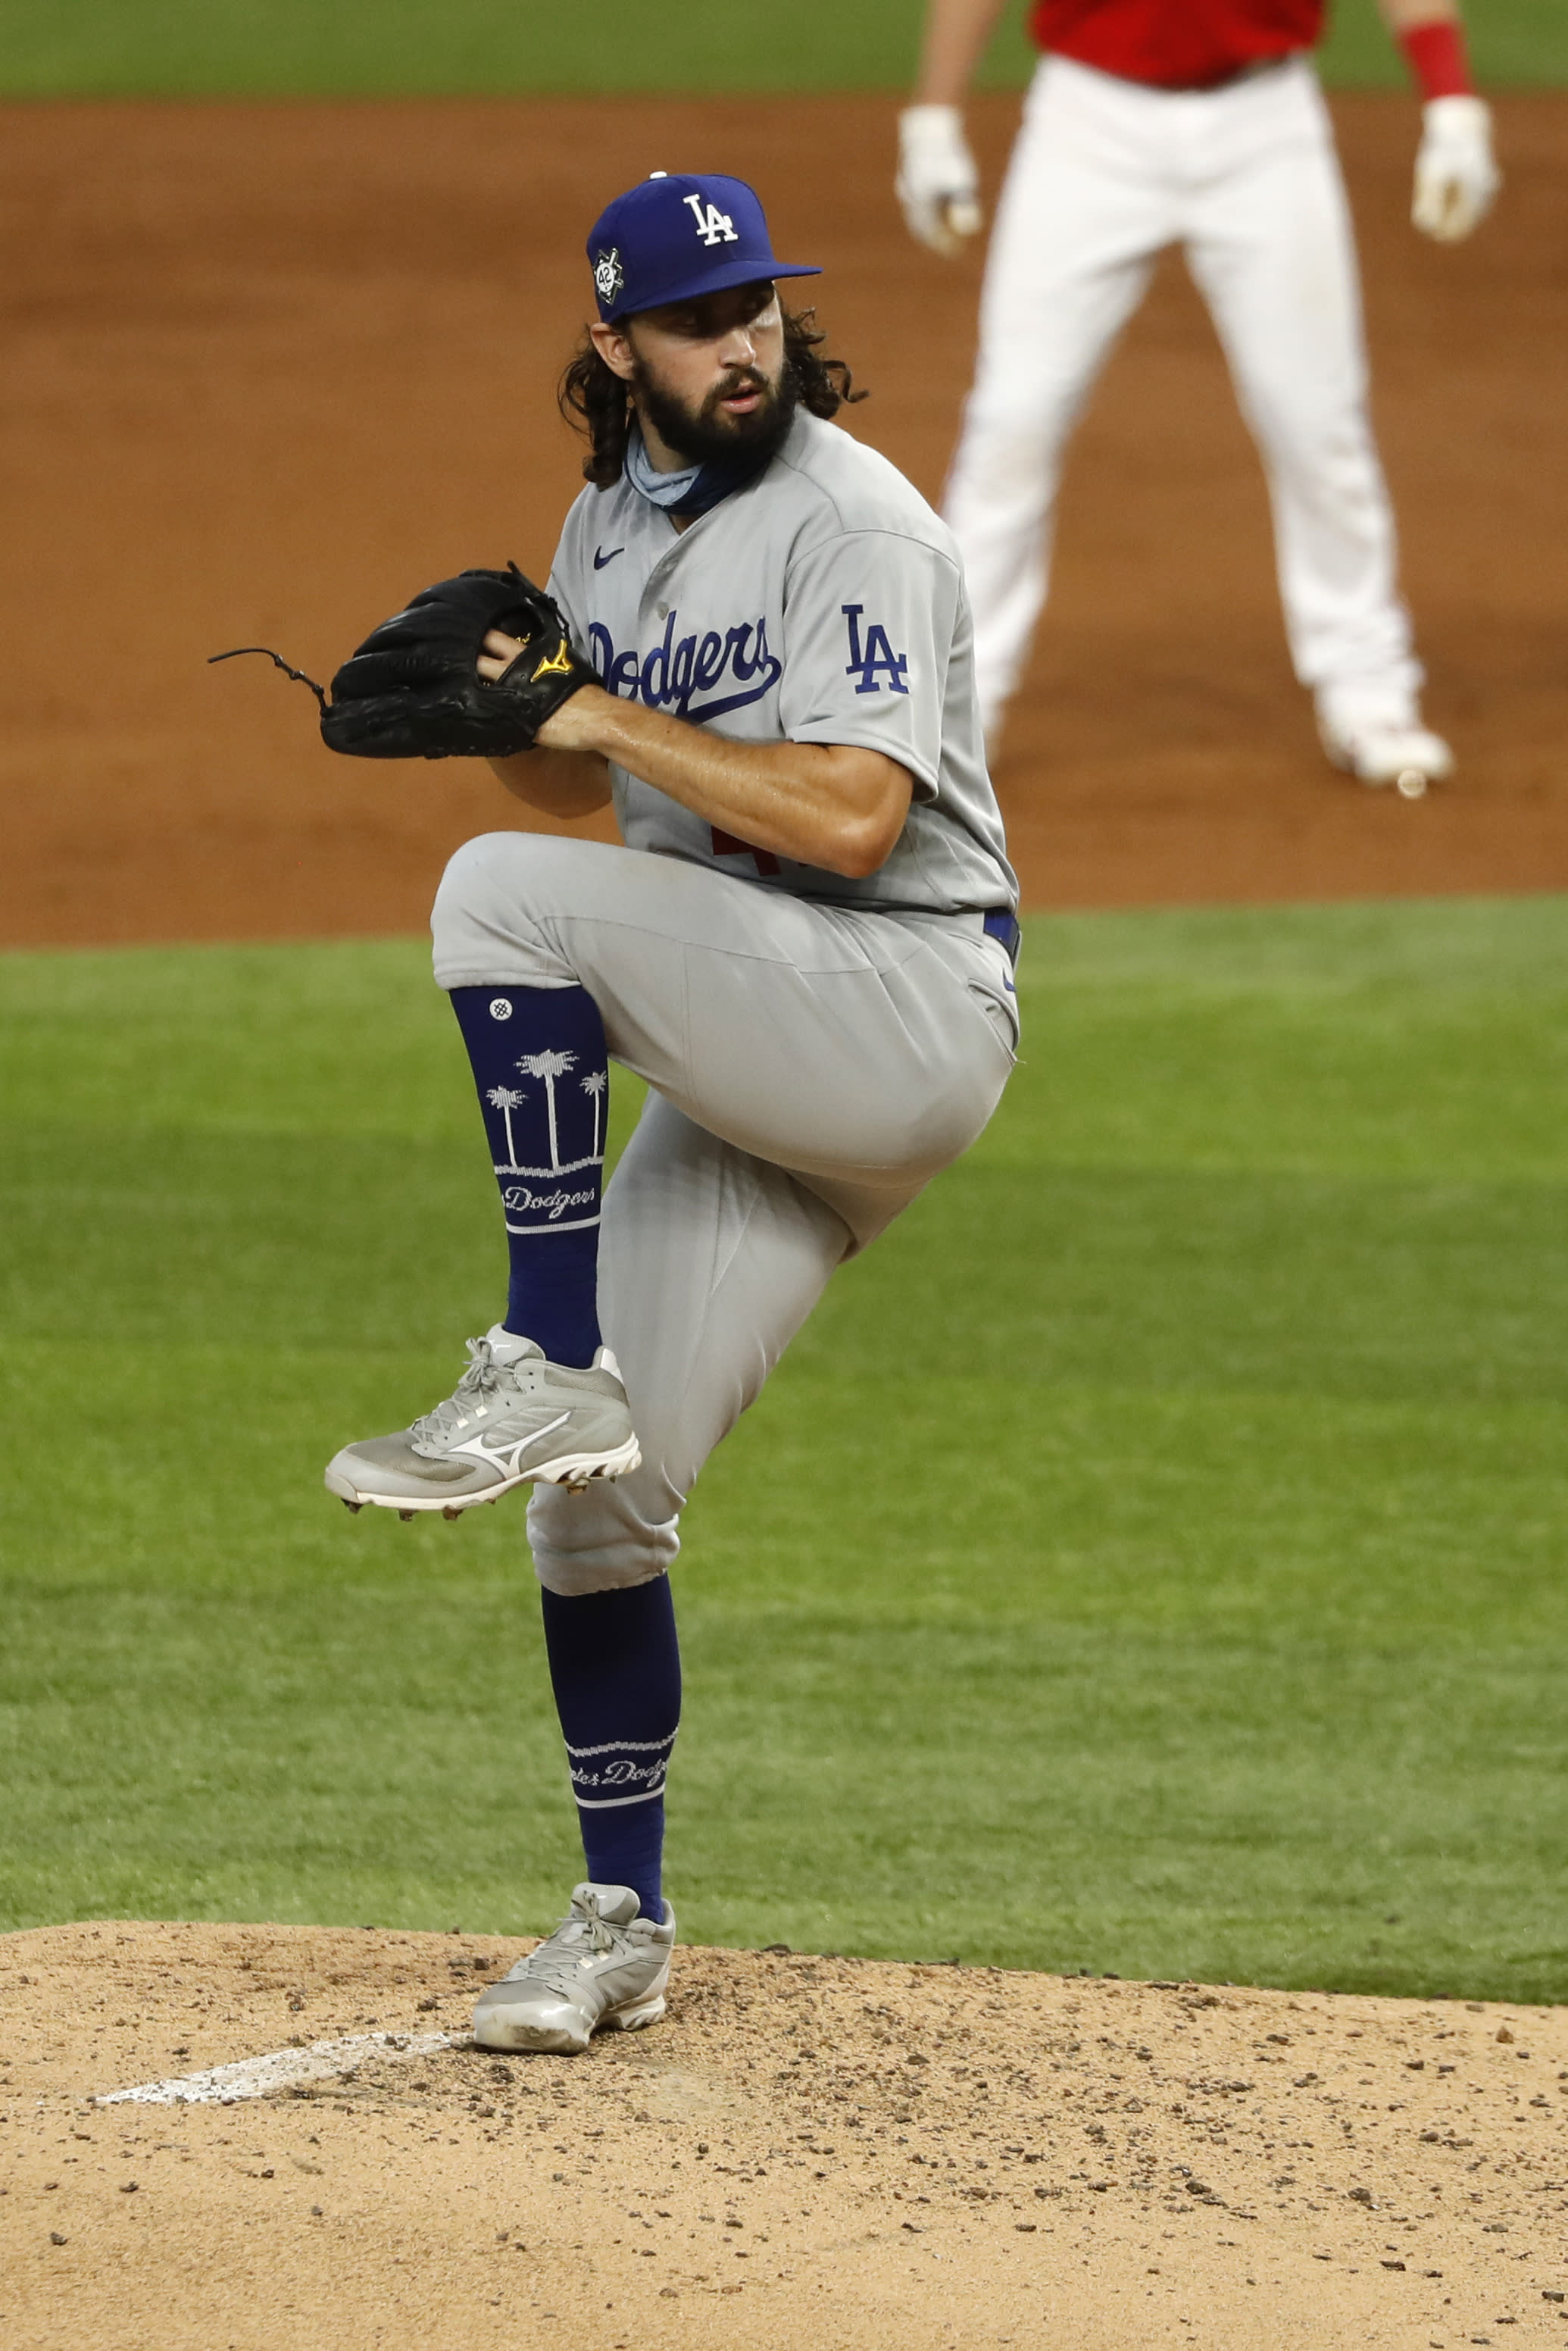 Los Angeles Dodgers starting pitcher Tony Gonsolin throws during the third inning of a baseball game against the Los Angeles Dodgers in Arlington, Texas, Sunday, Aug. 30, 2020. (AP Photo/Roger Steinman)